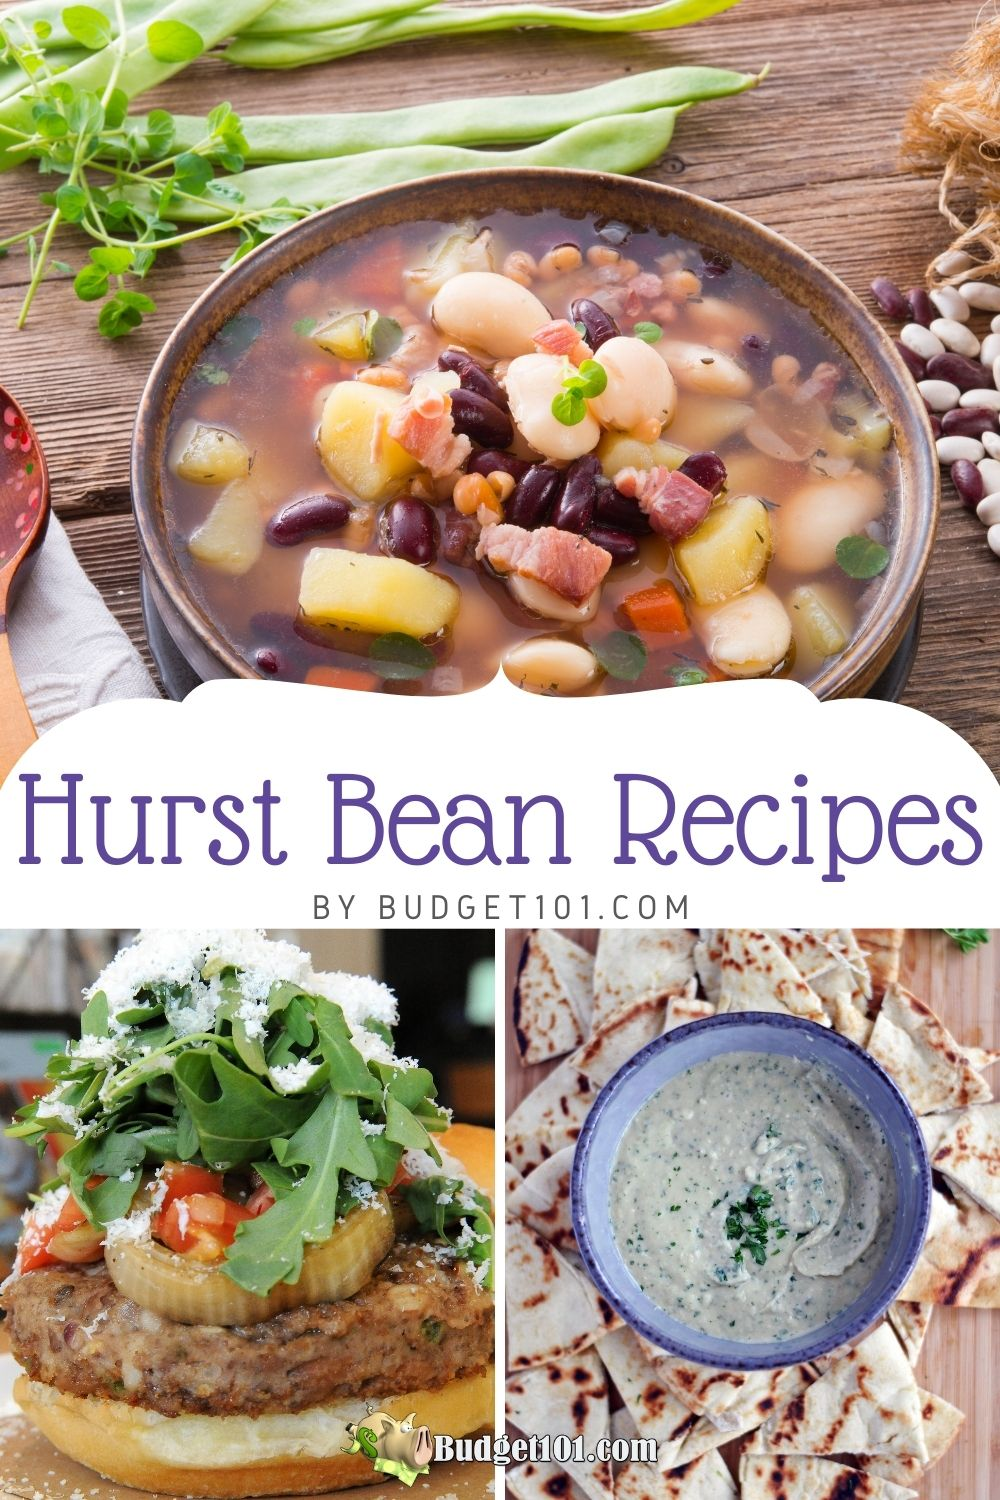 I love beans, but I get bored of the same old baked beans! These recipes are a great way to change up your menu planning while also including these healthy and economical staples. So try one out this week. You won't regret it! #hurstbeans #Beans #DirtCheap #Budget101